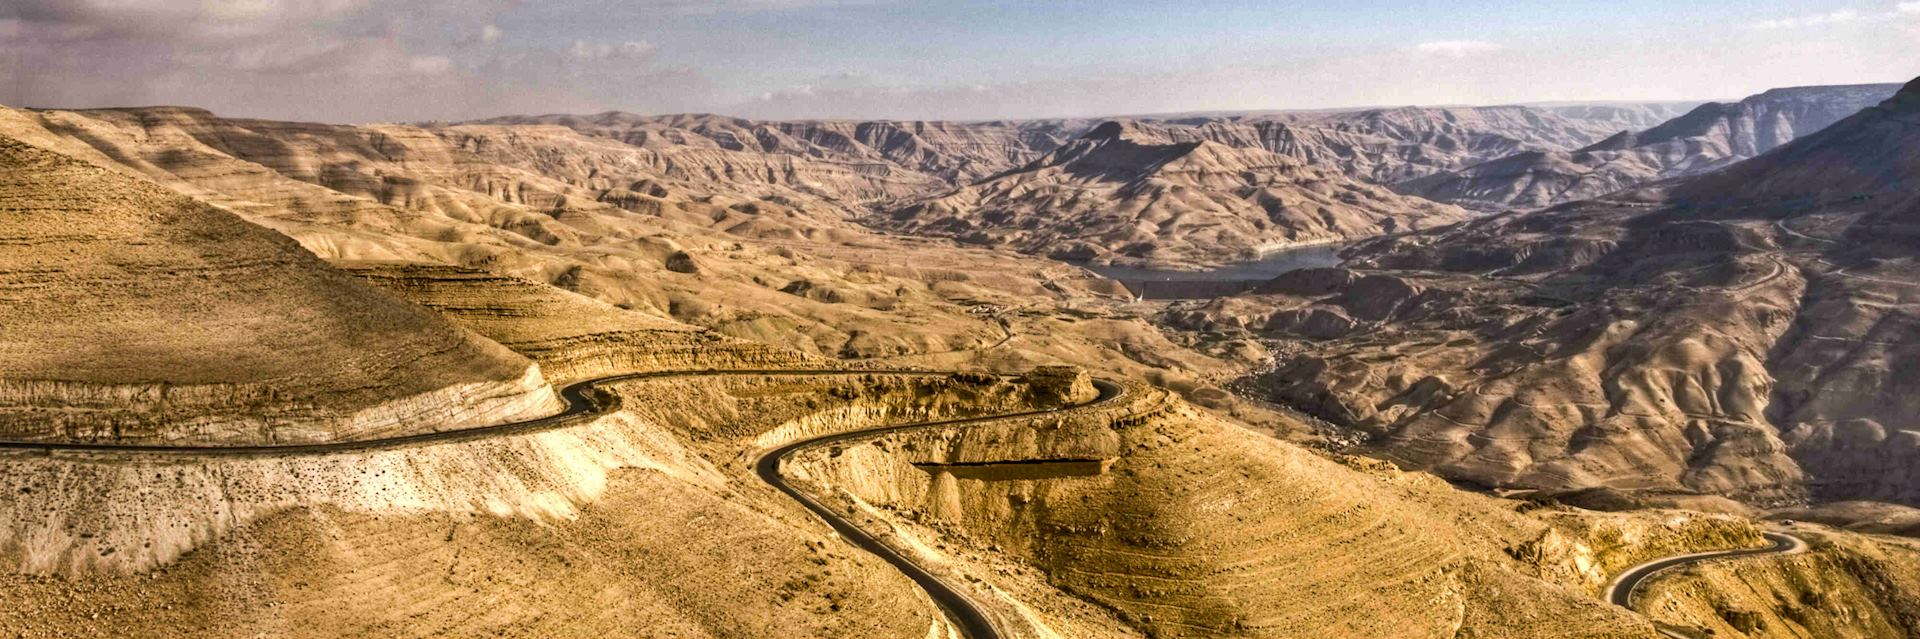 The Kings' Highway in Jordan